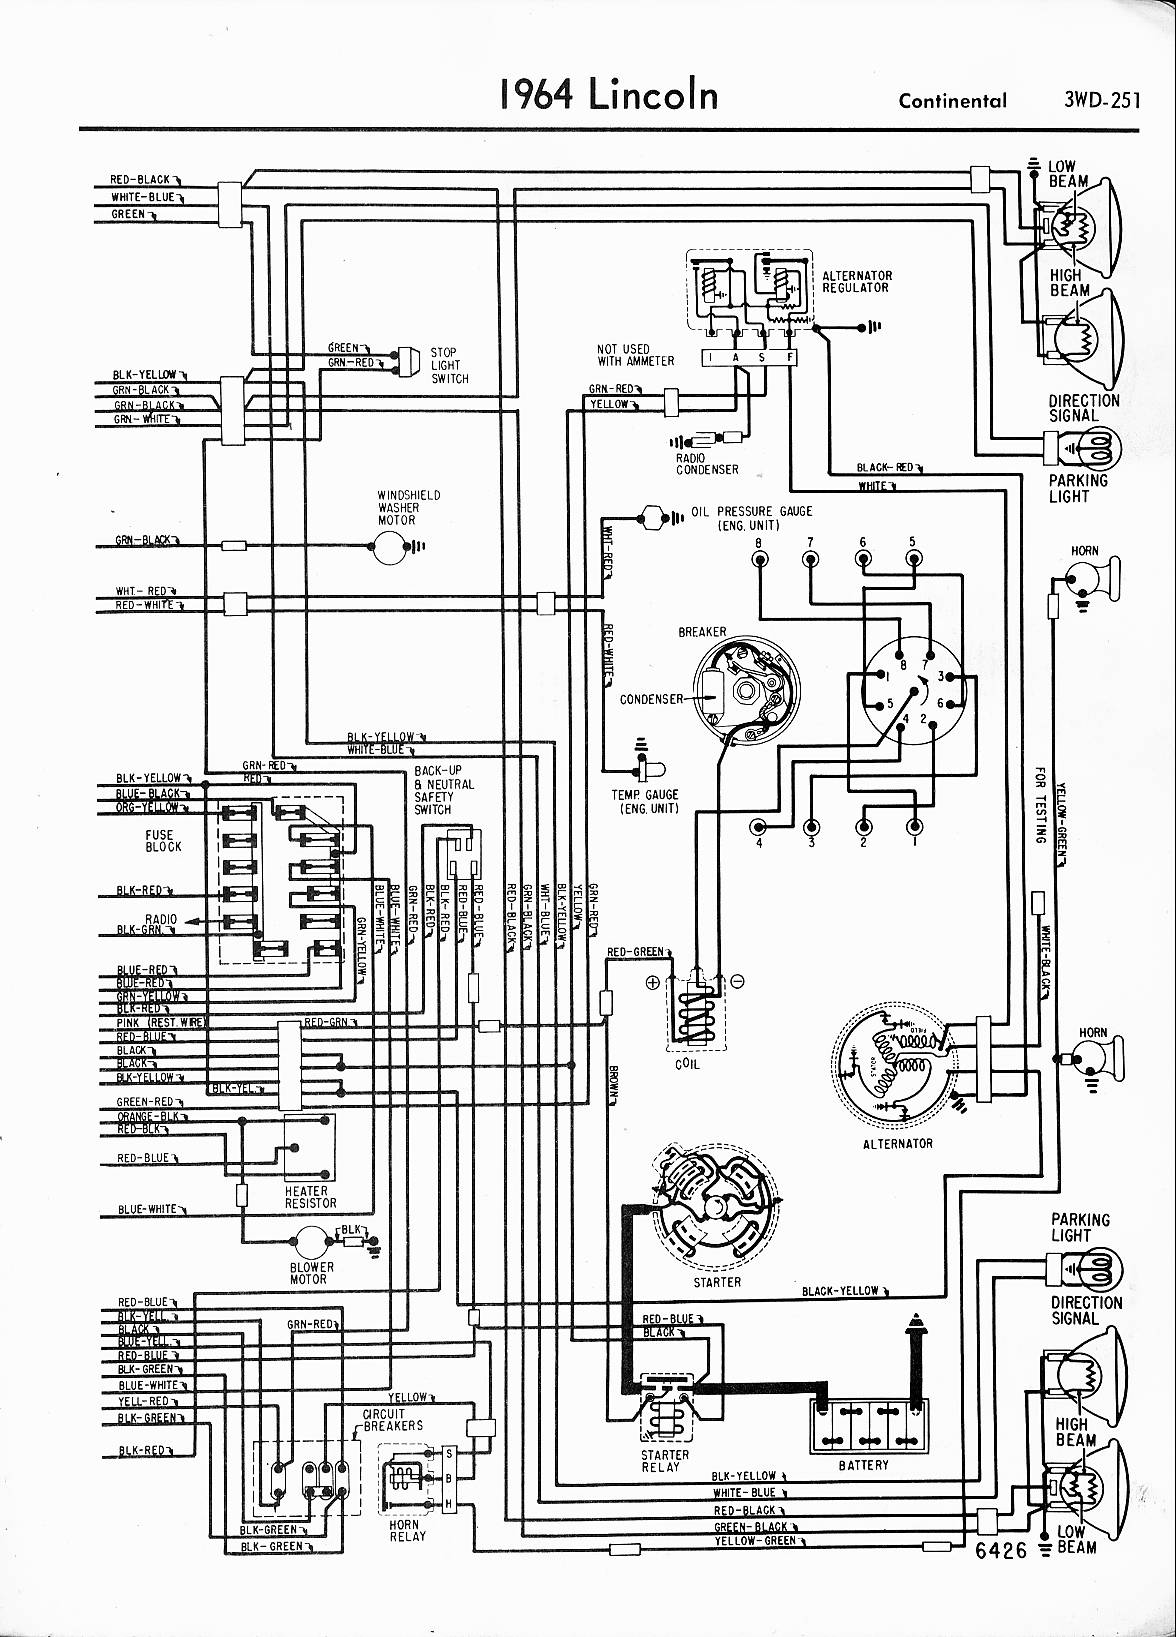 Continental Chiller Wiring Diagram Not Lossing Furnace Lincoln 1947 Diagrams Free Third Level Rh 18 6 12 Jacobwinterstein Com Oil